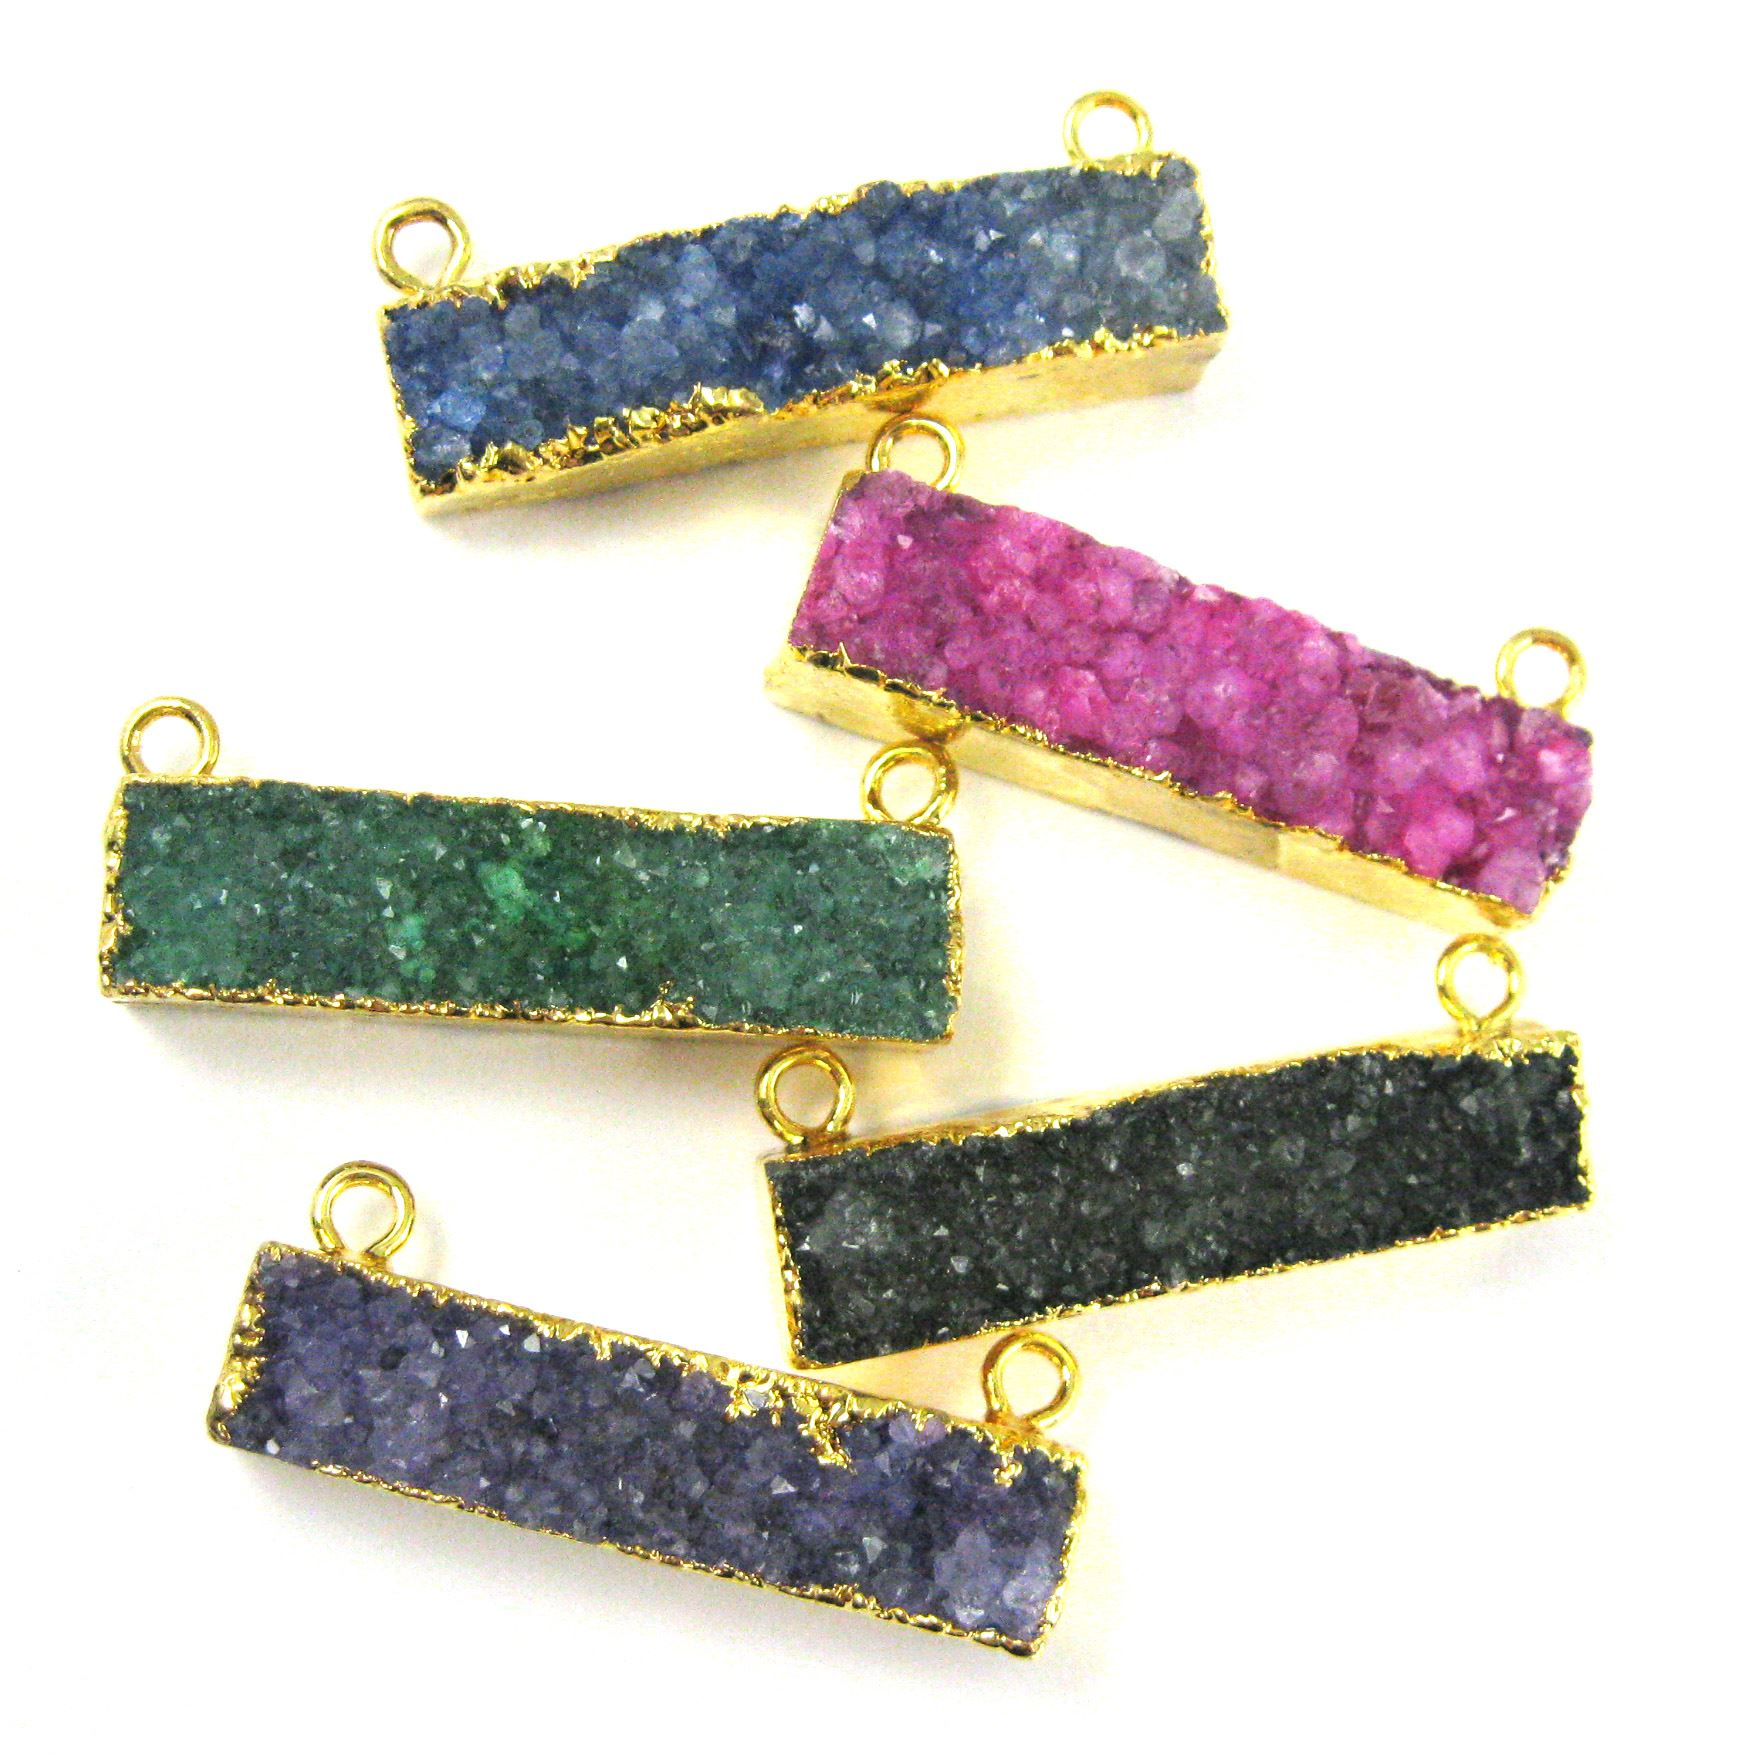 Druzy Gemstone Bar Pendant, Natural Rainbow Agate Gold Dipped Connector Pendant, Top Rings - Black Agate -35mm